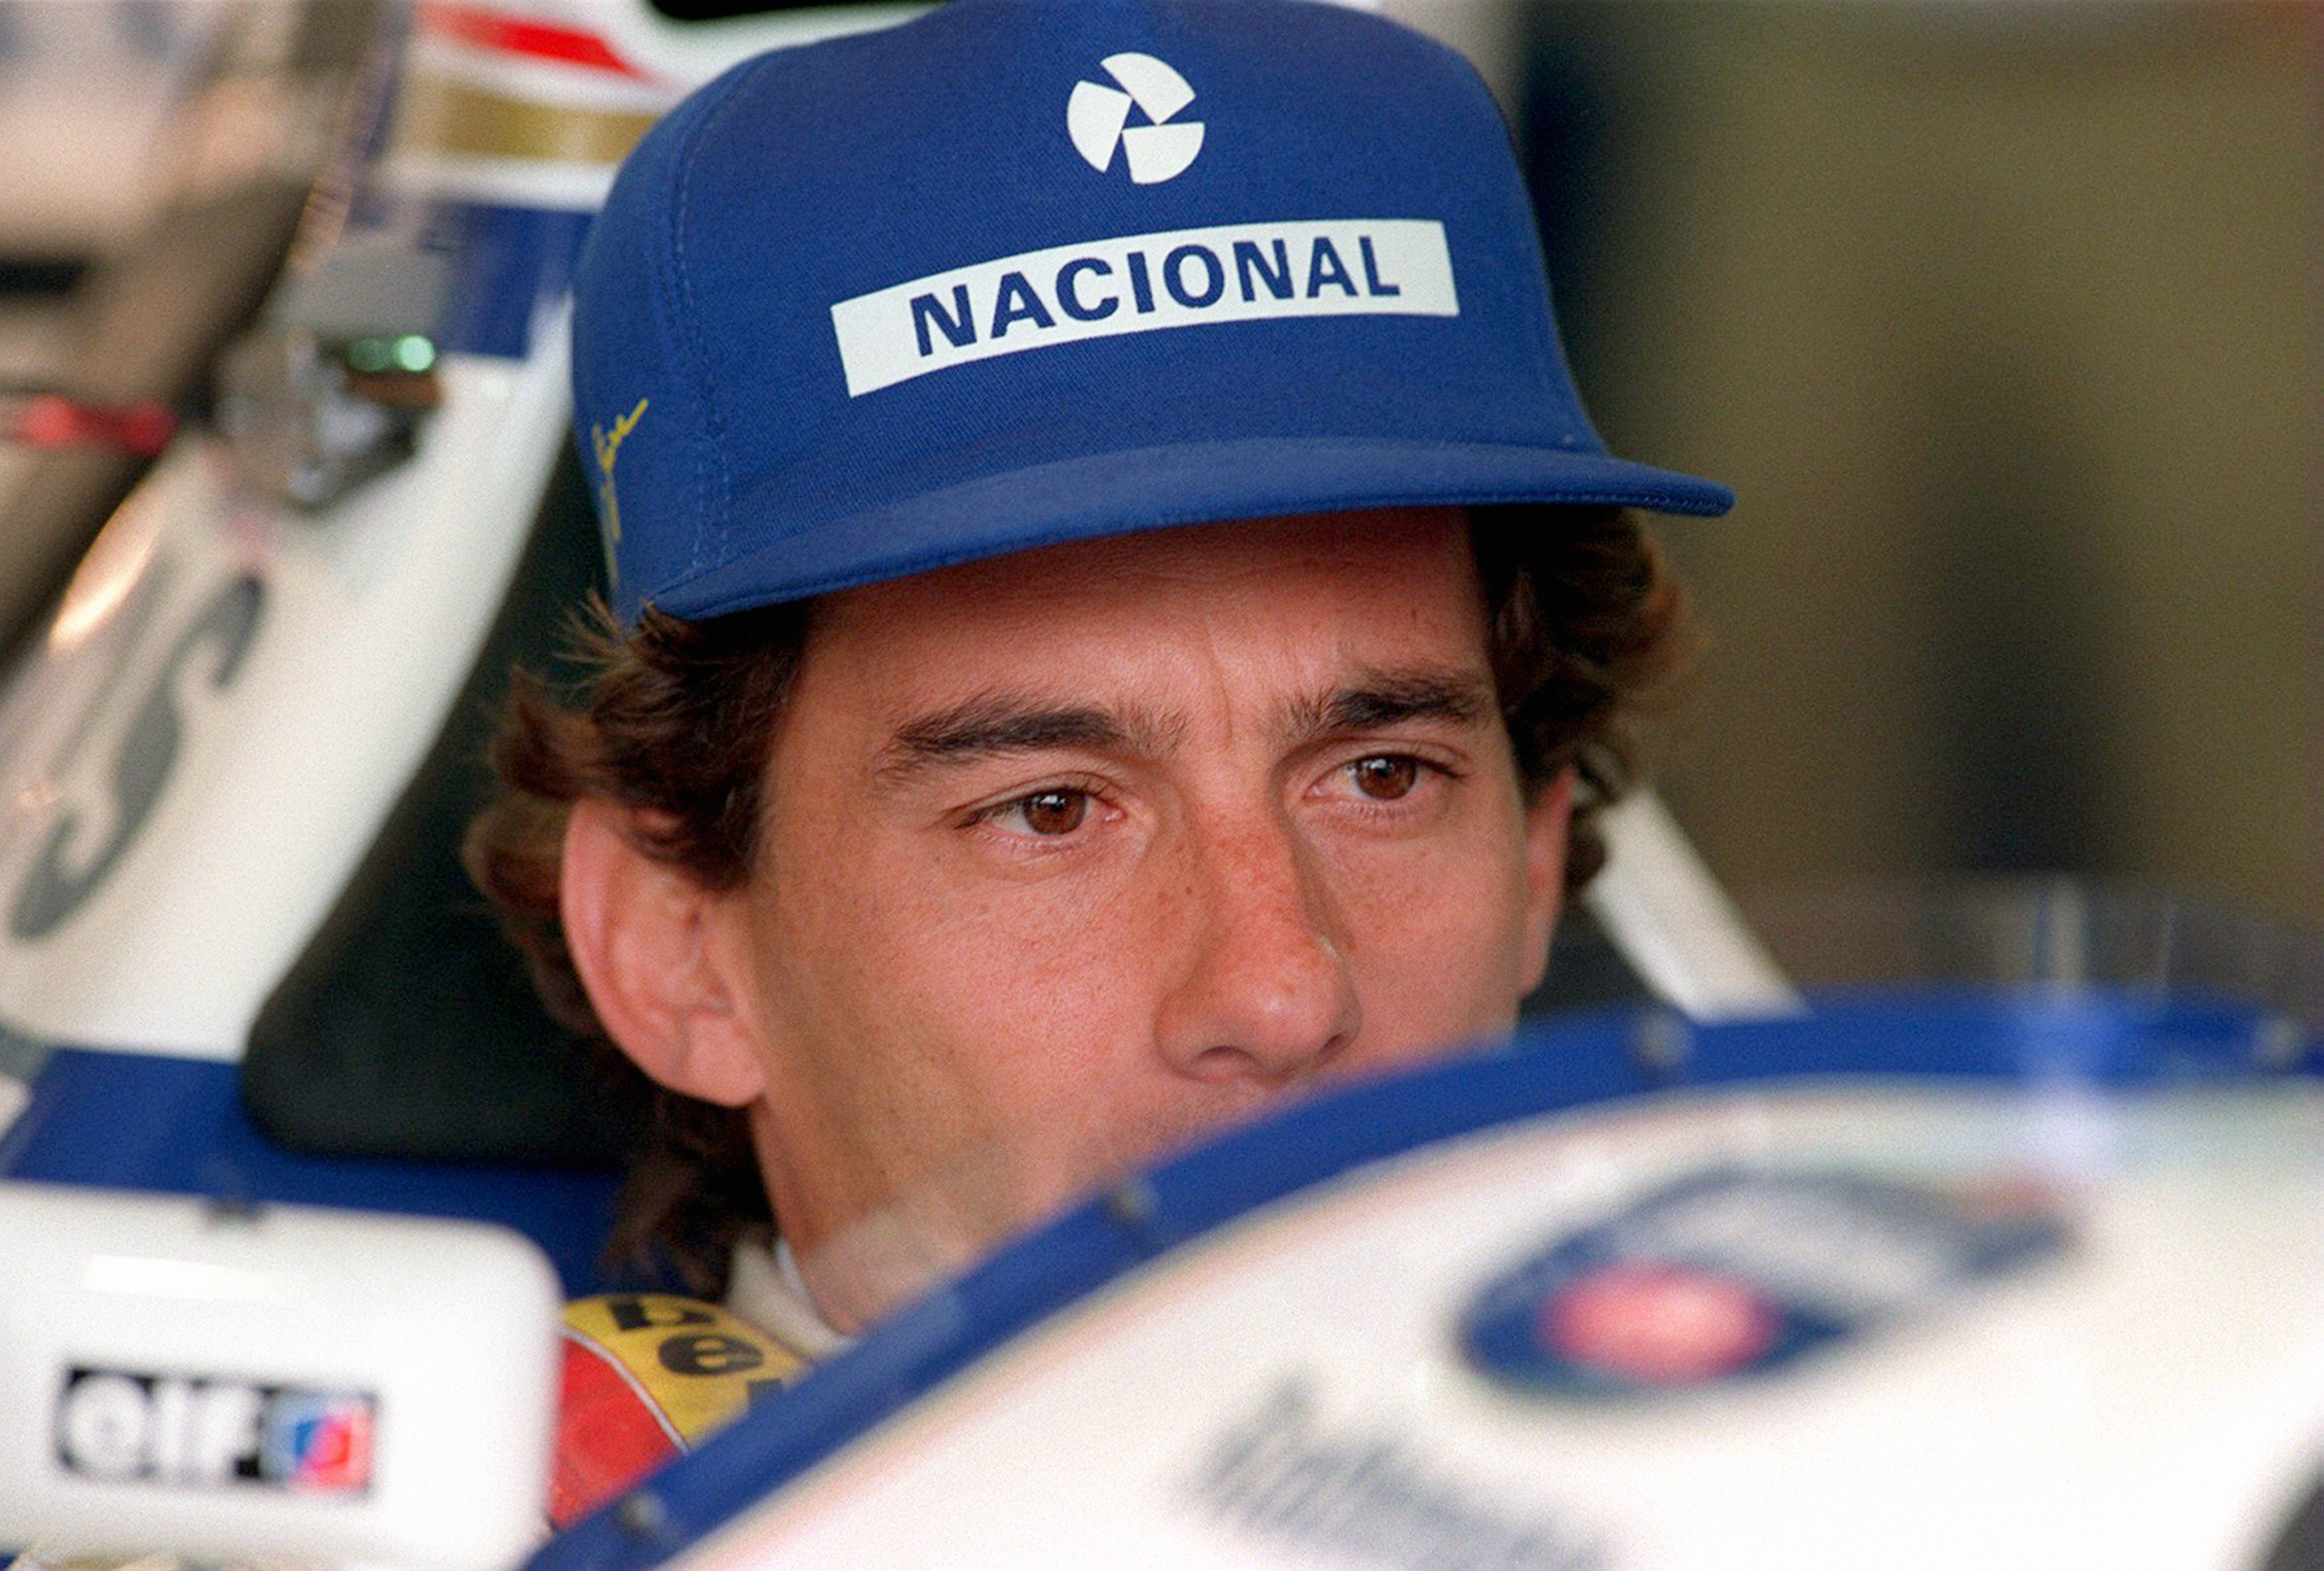 The Death of Ayrton Senna: 25 years on from the race that changed F1